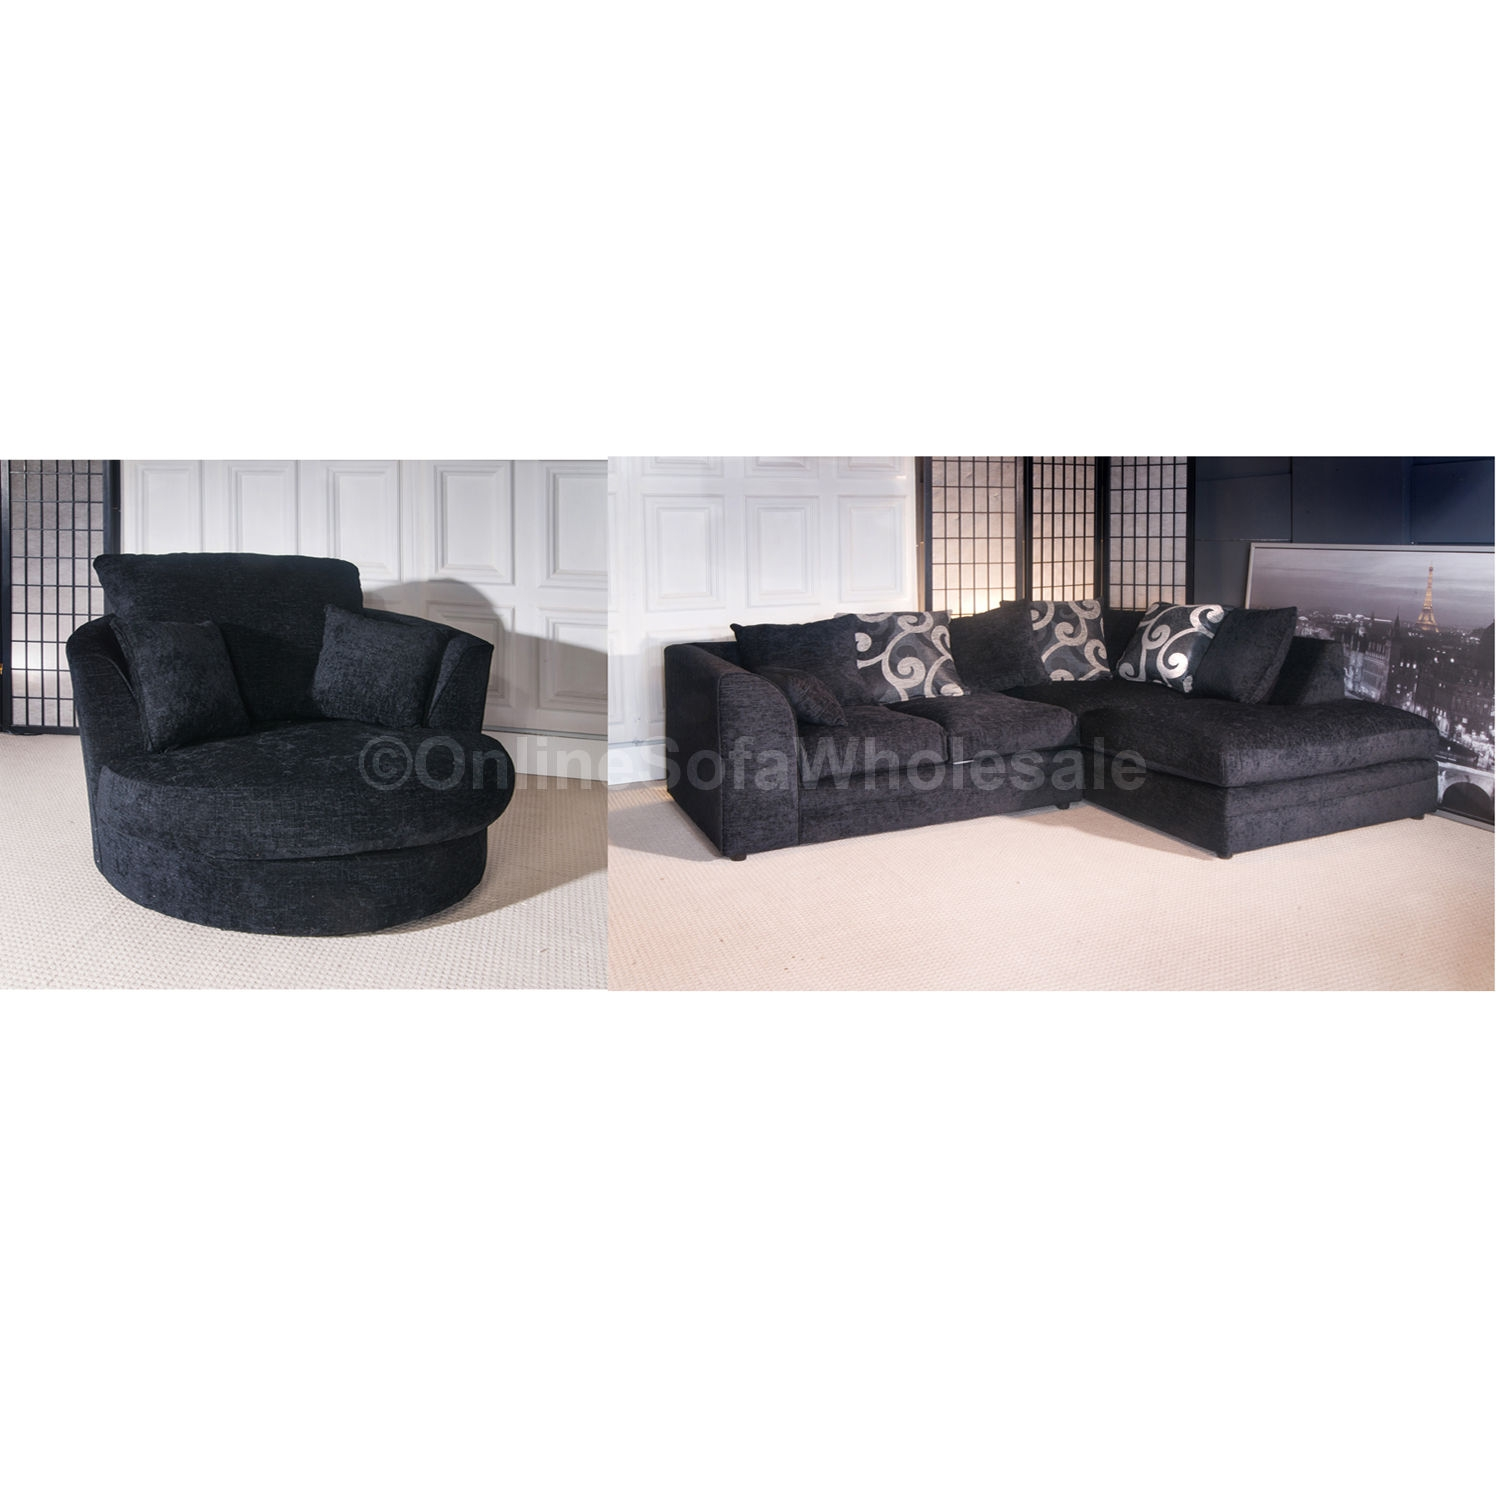 56 Swivel Sofa Chair Seater Sofa And Swivel Chair Dfs In Cardiff Within Corner Sofa And Swivel Chairs (Image 2 of 15)